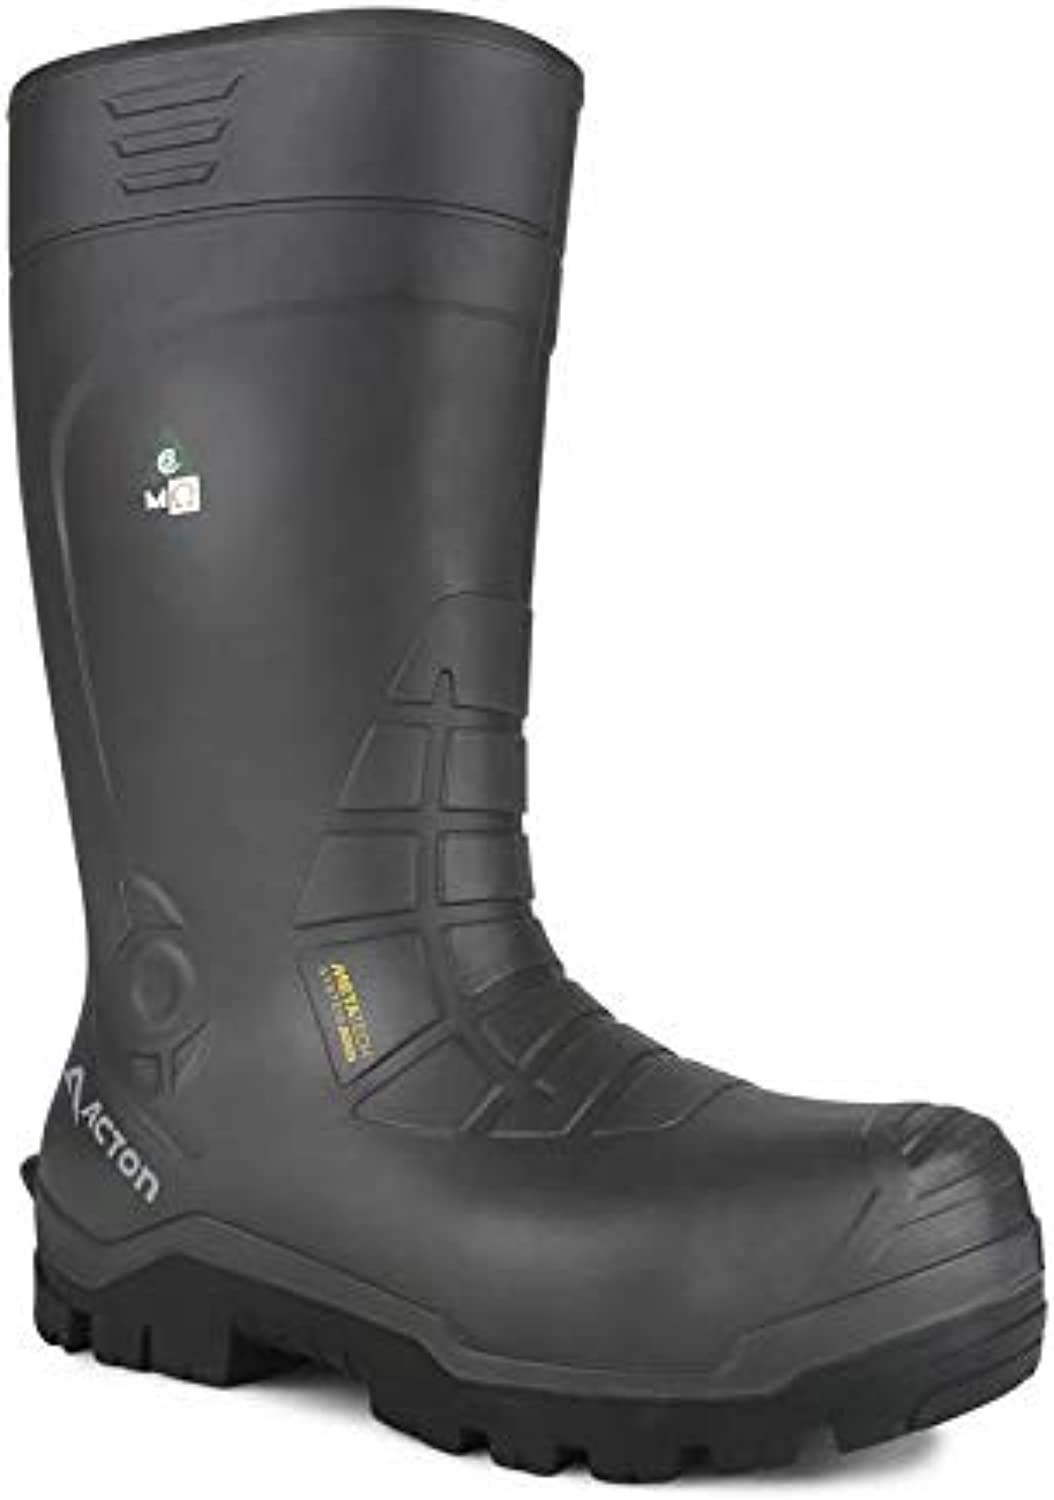 Acton All Weather Rubber Safety Boot, Black